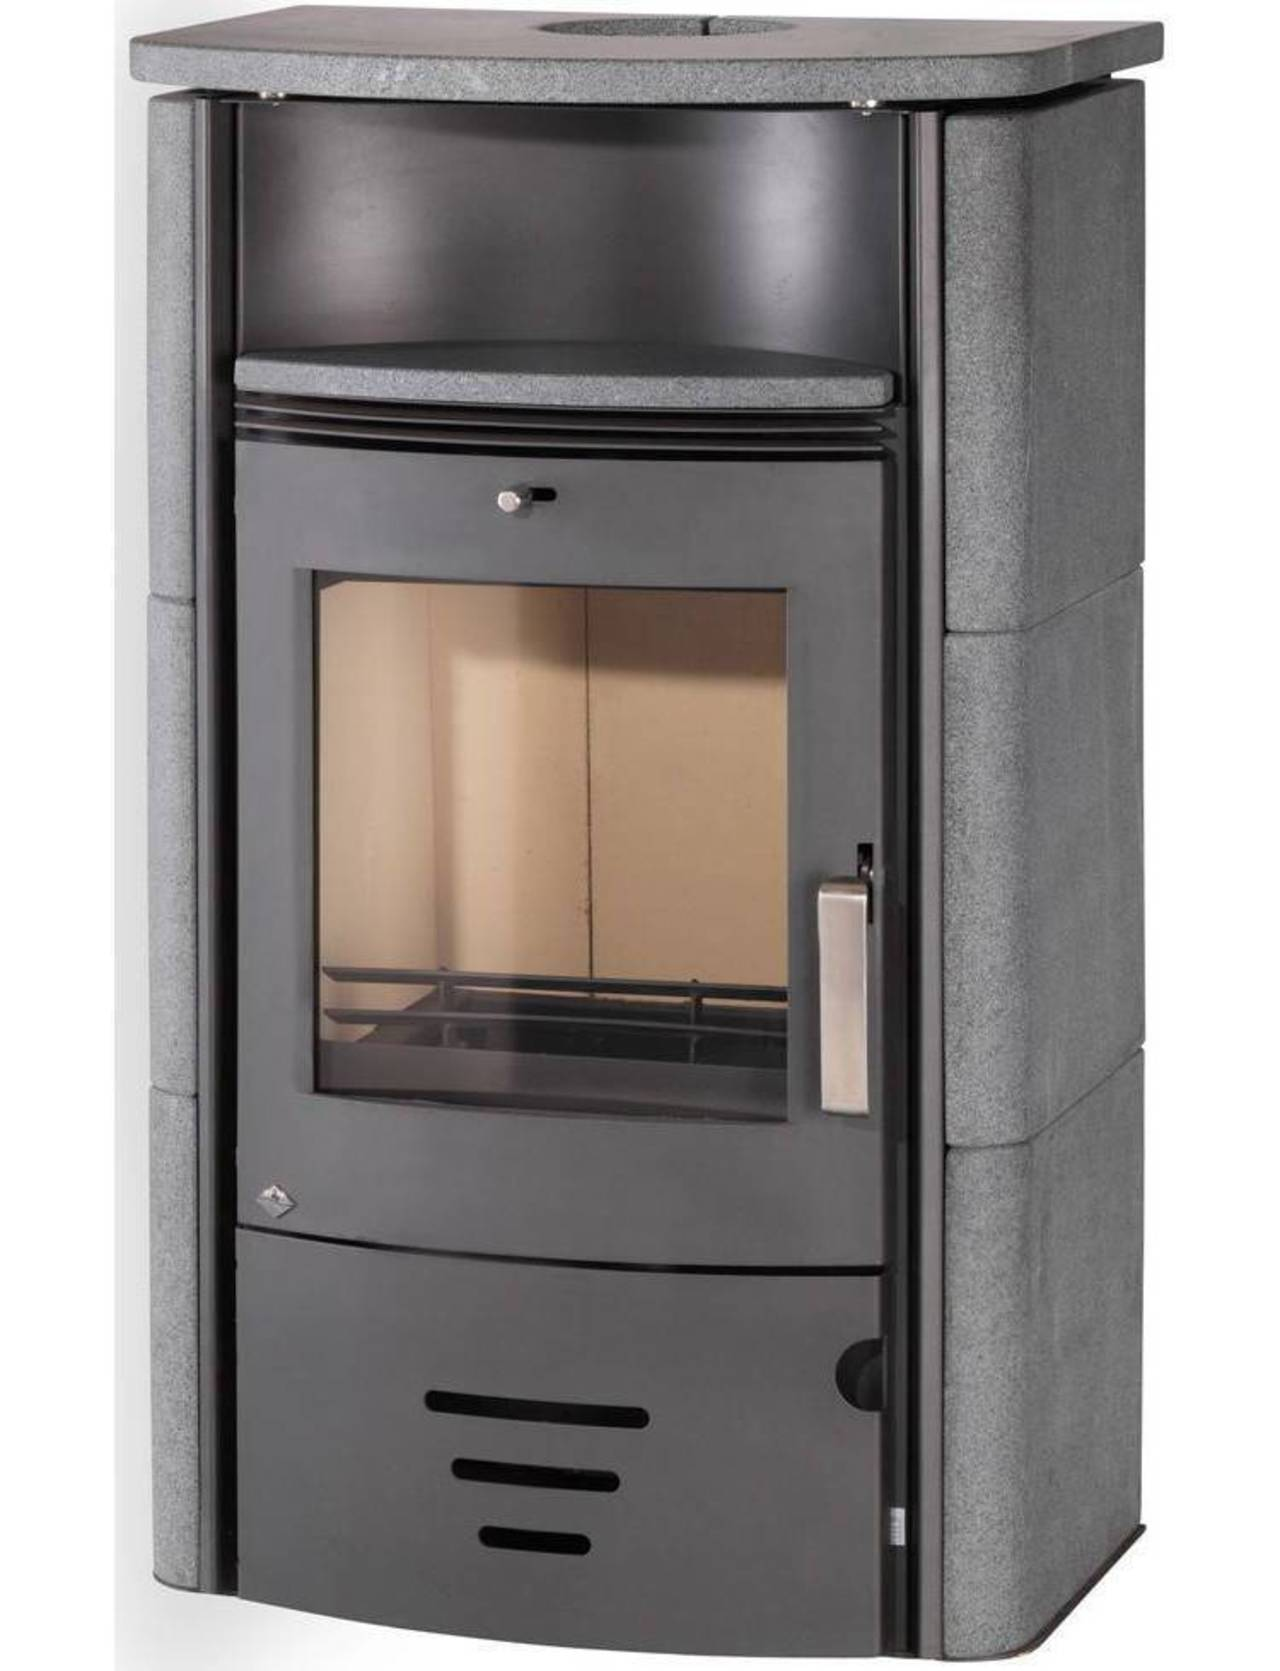 techfire kaminofen turin naturstein 7 kw dauerbrand max 180 m 4250372180596 ebay. Black Bedroom Furniture Sets. Home Design Ideas